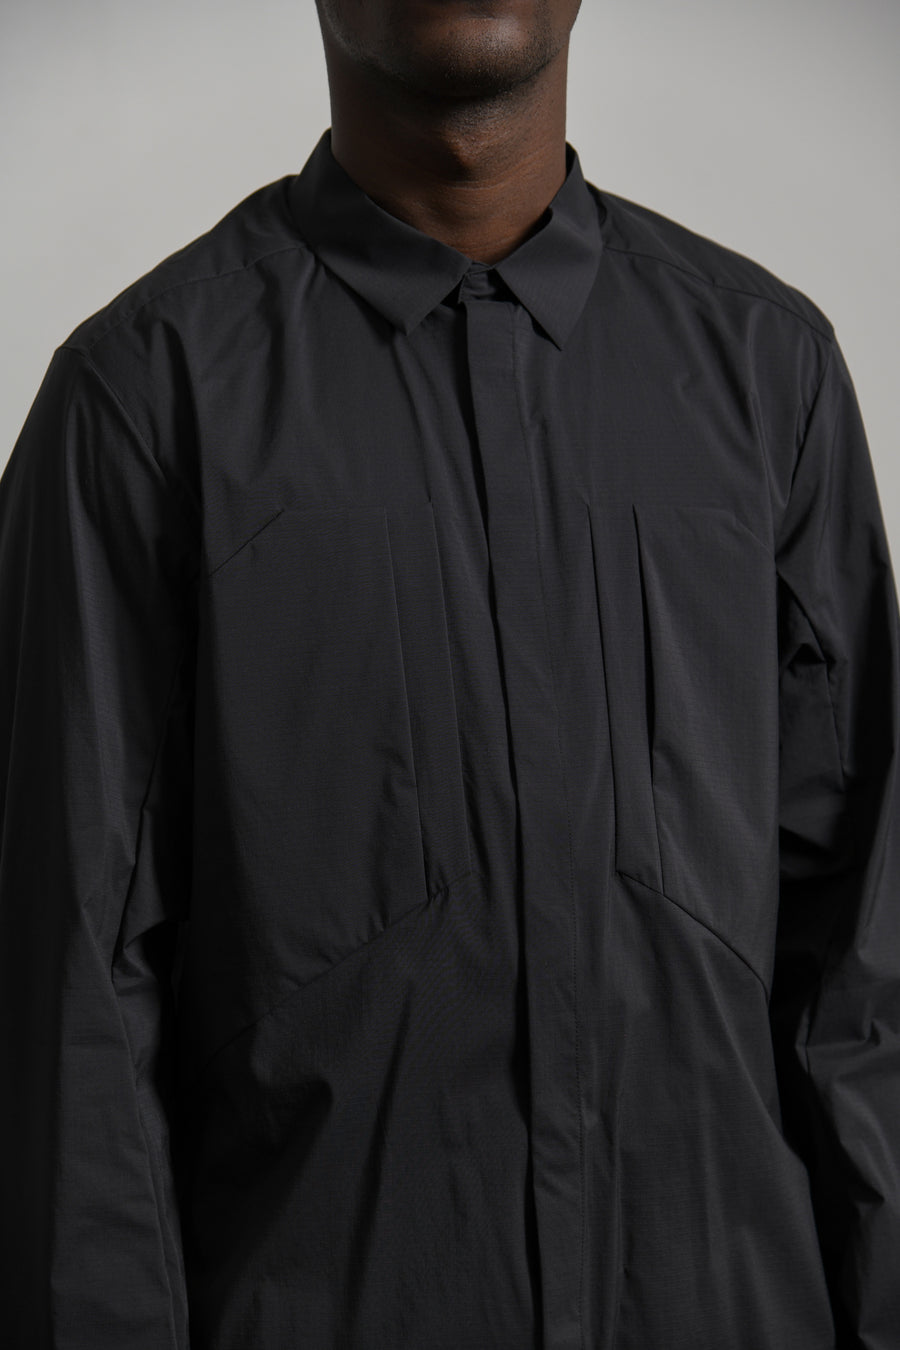 Demlo Overshirt Black